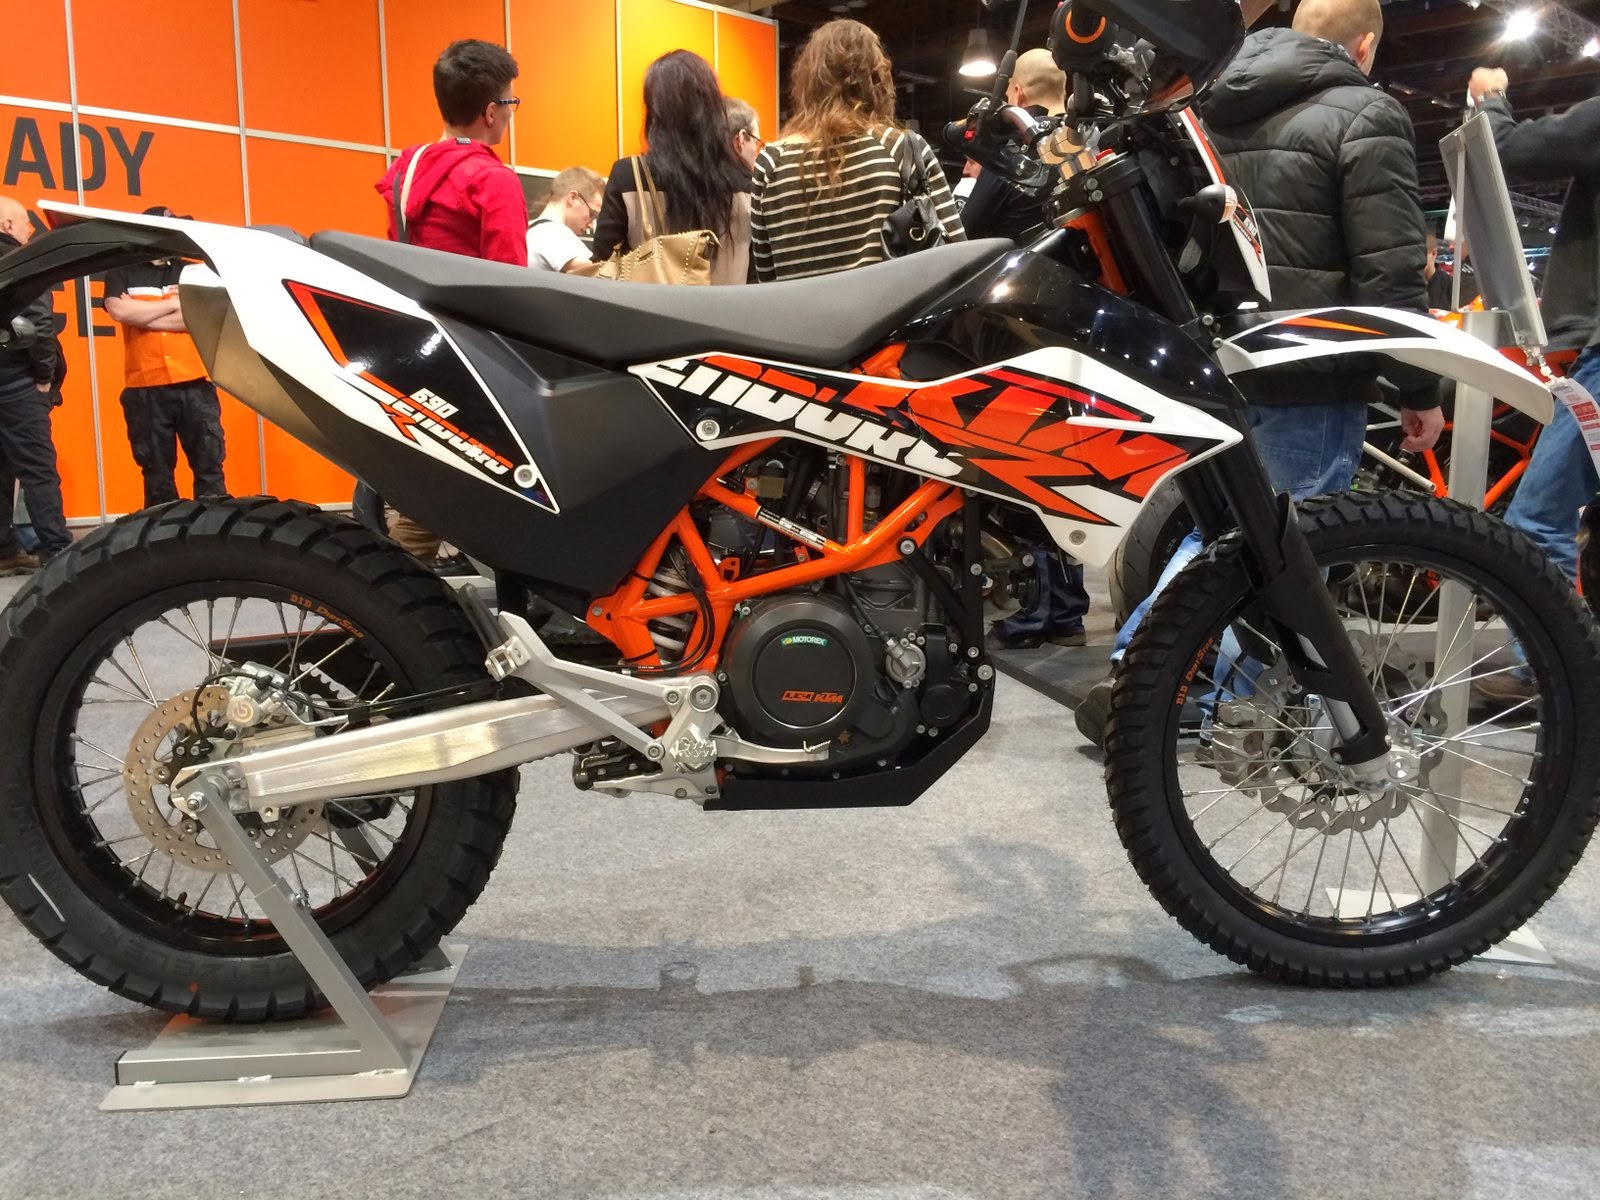 project ktm 690 enduro r: the motorcycle show